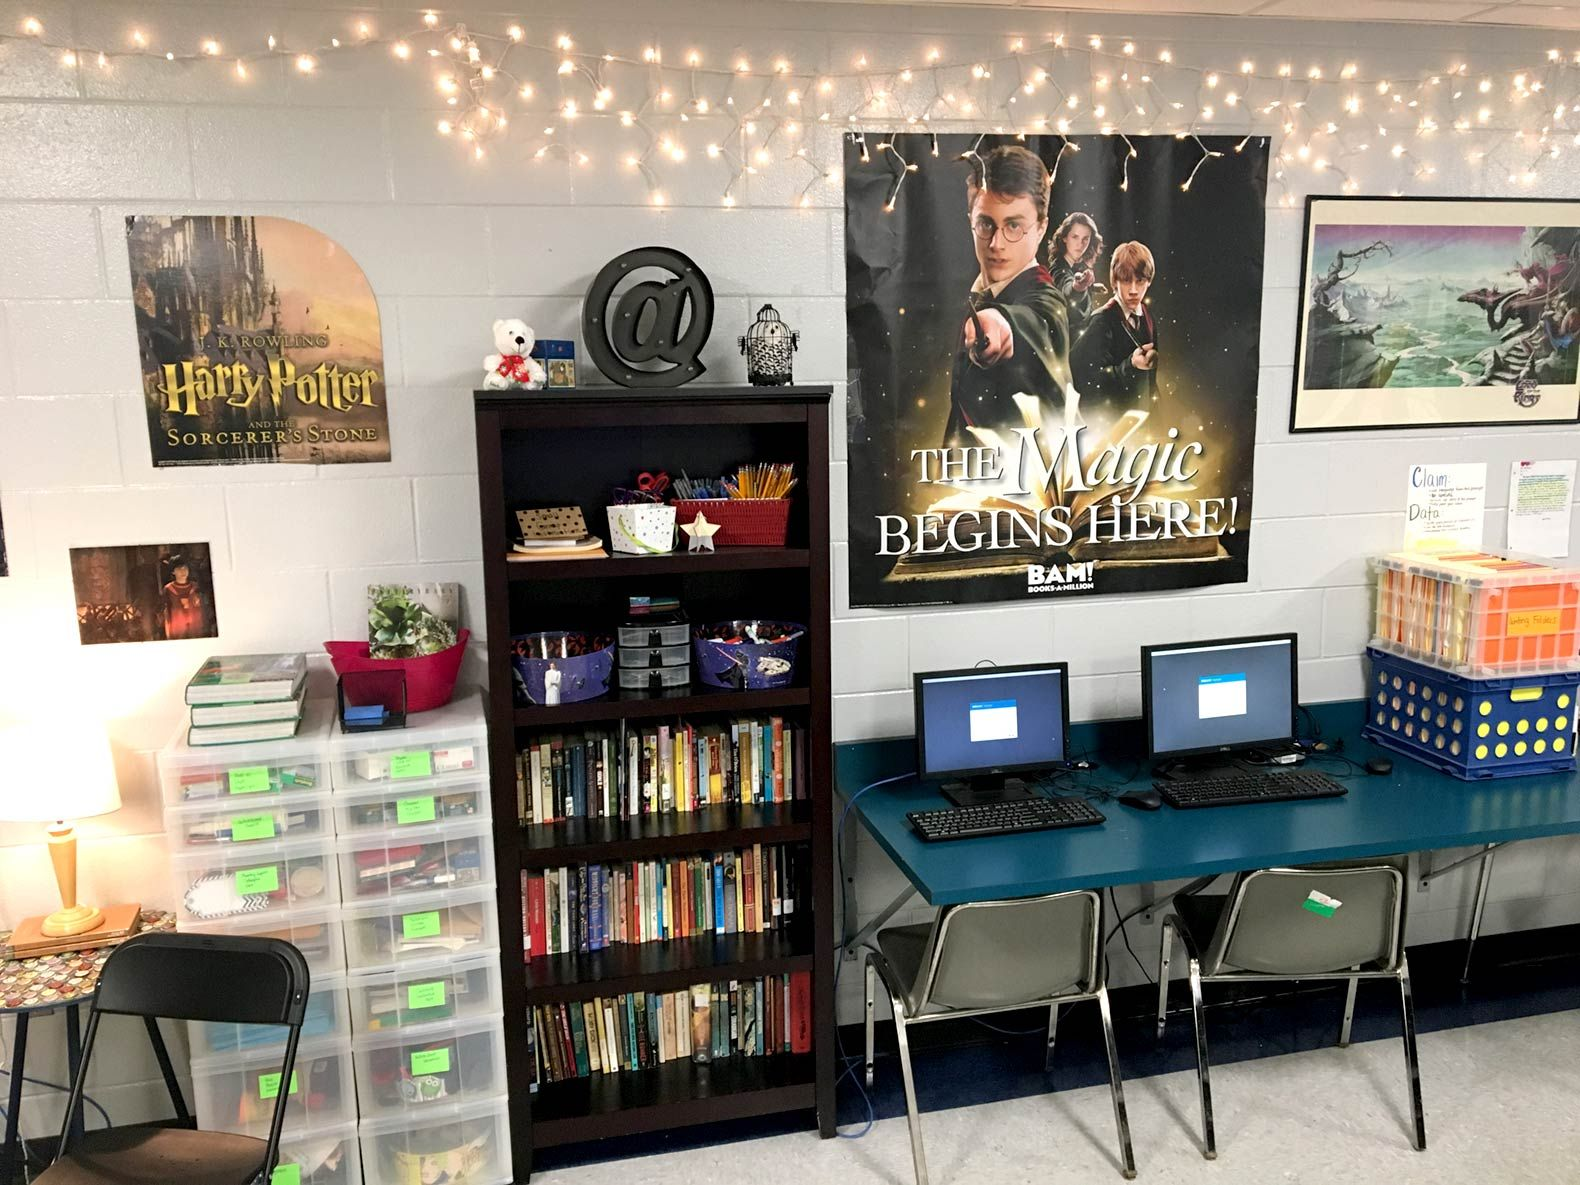 Polak created a tech station next to the reading nook, and uses a range of storage options. She hangs Harry Potter posters throughout the classroom to share her personality with her students.